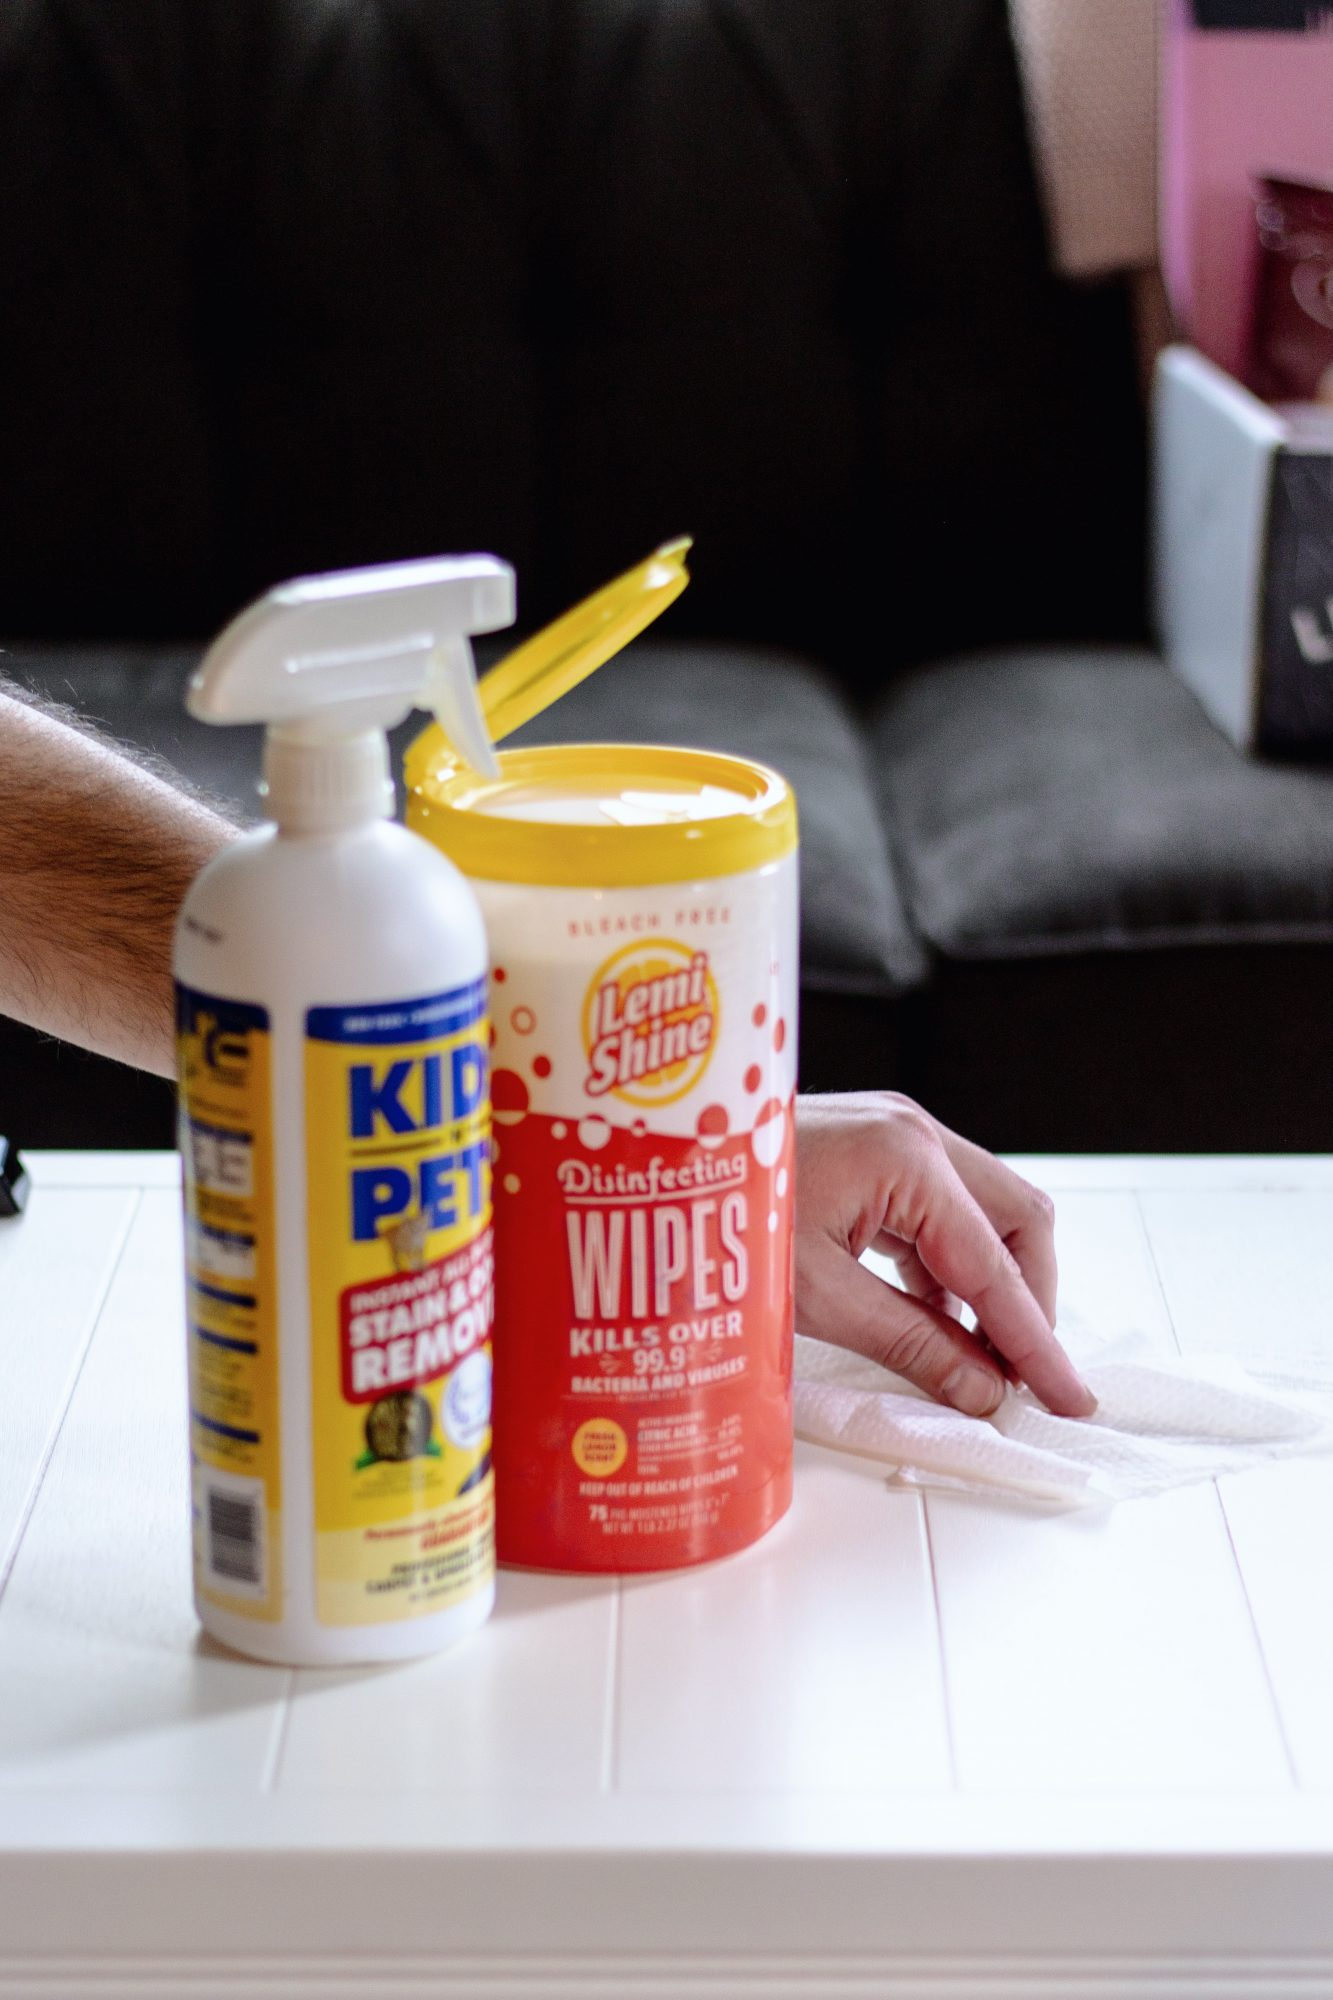 Disinfecting Wipes from LemiShine and Stain & Odor Remover from Kids n Pets